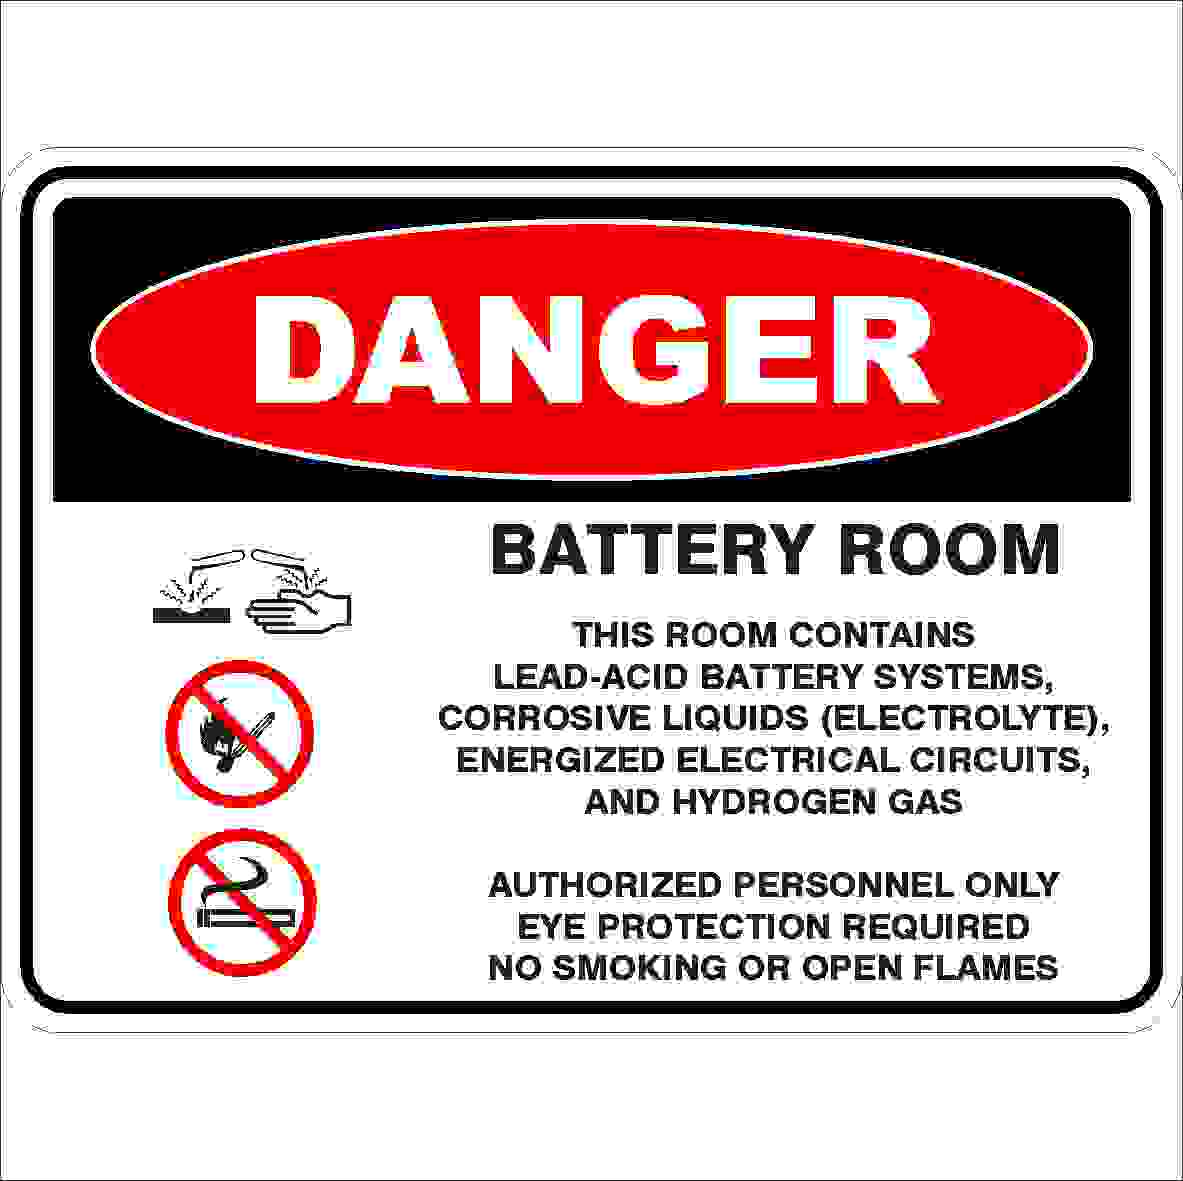 Danger Signs BATTERY ROOM - DETAILED